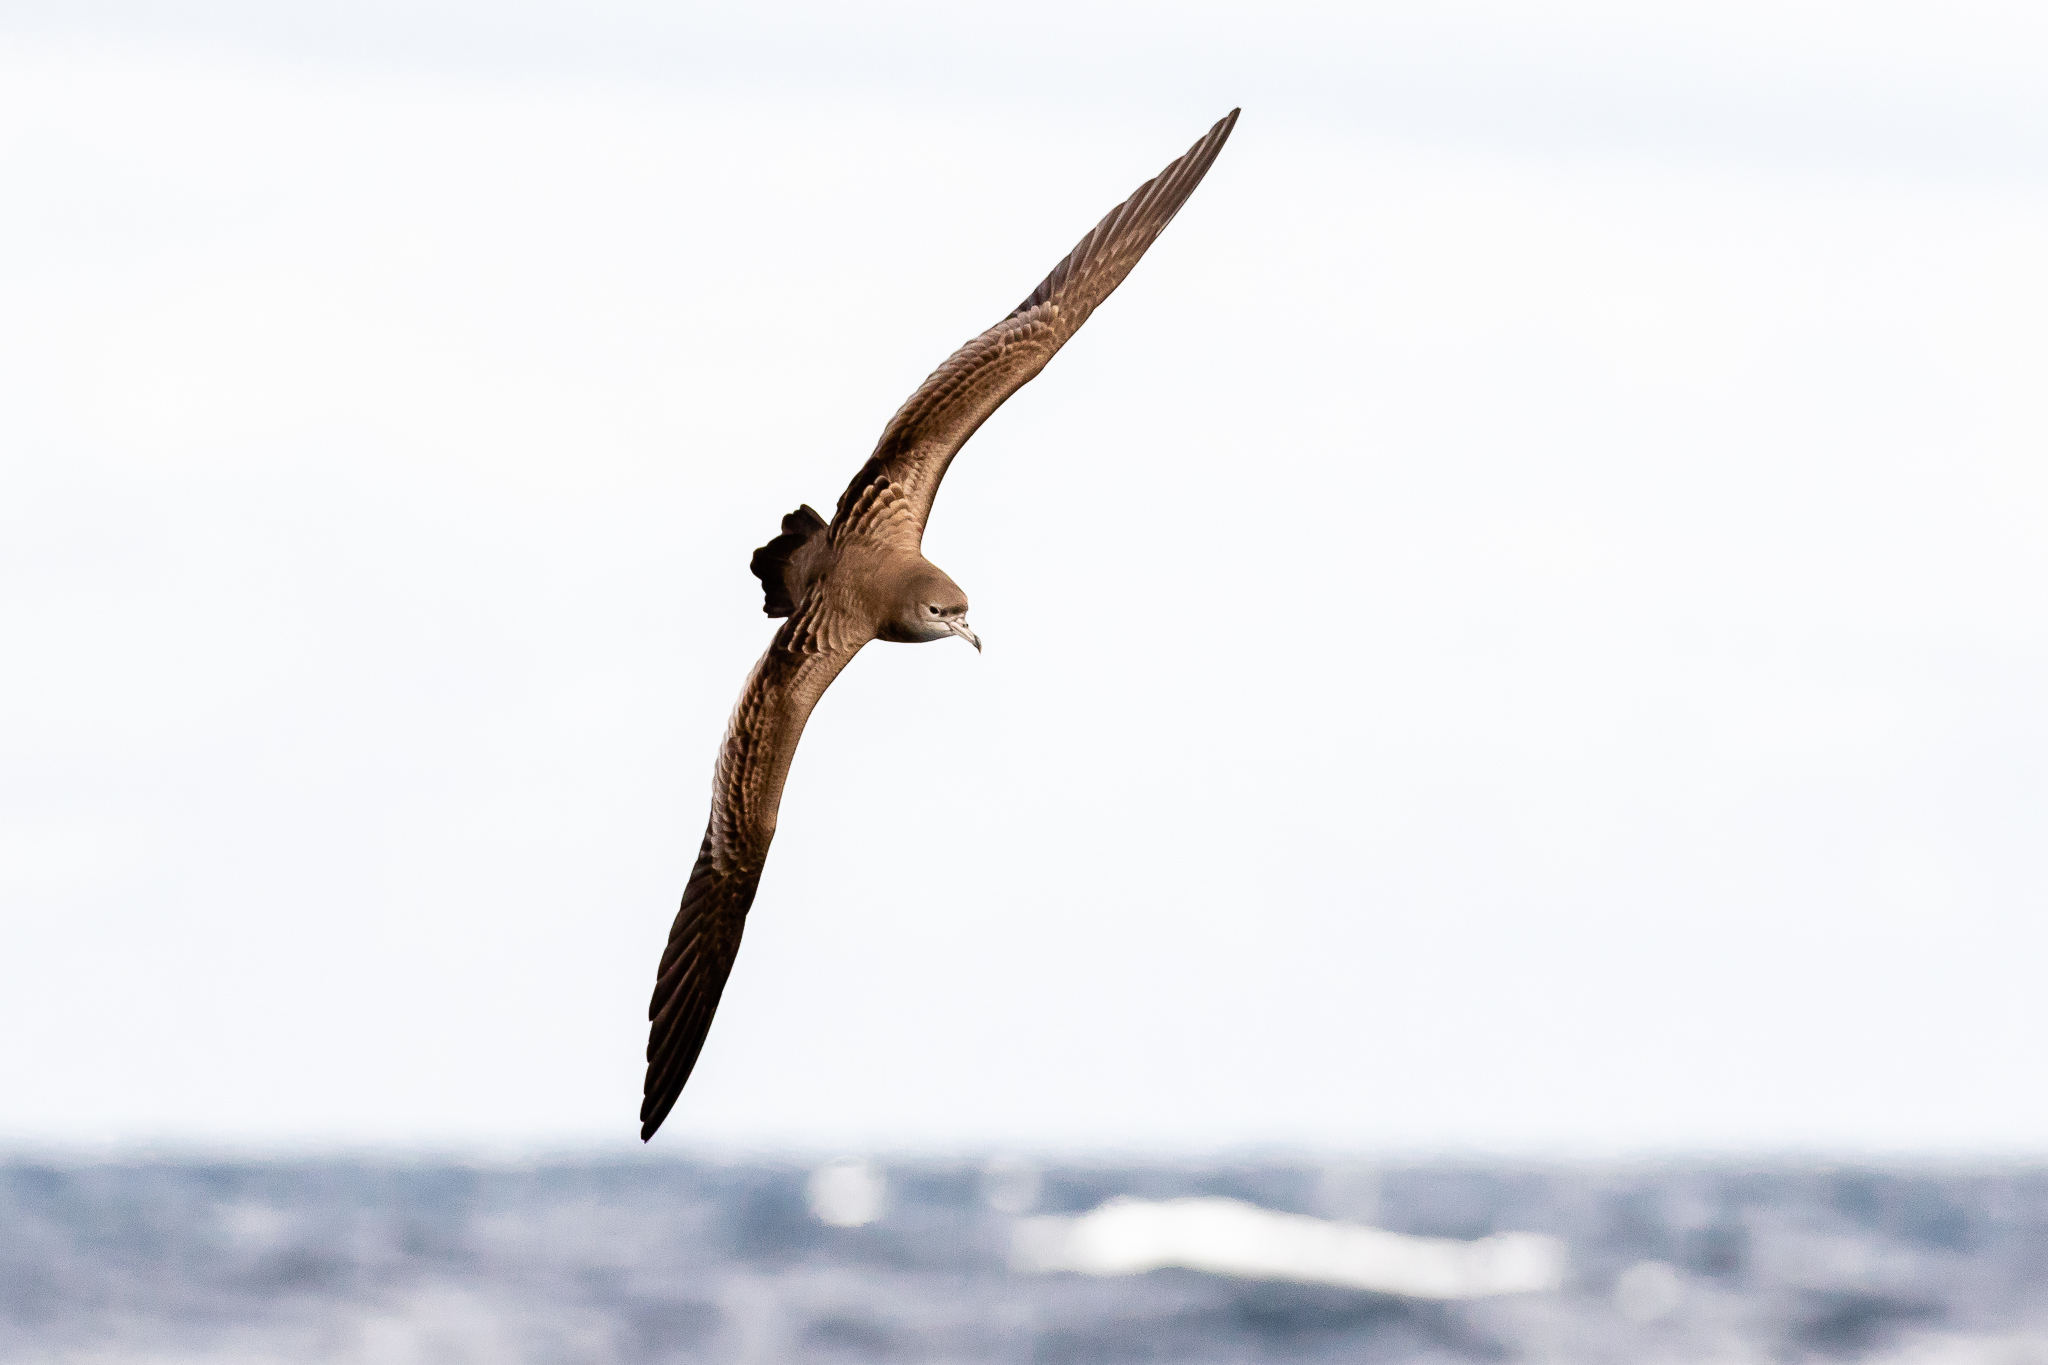 The Wedge-tailed Shearwater (45 cm long) breeds on Australian islands including Heron Island and Lord Howe Island. It feeds on fish, squid and crustaceans.